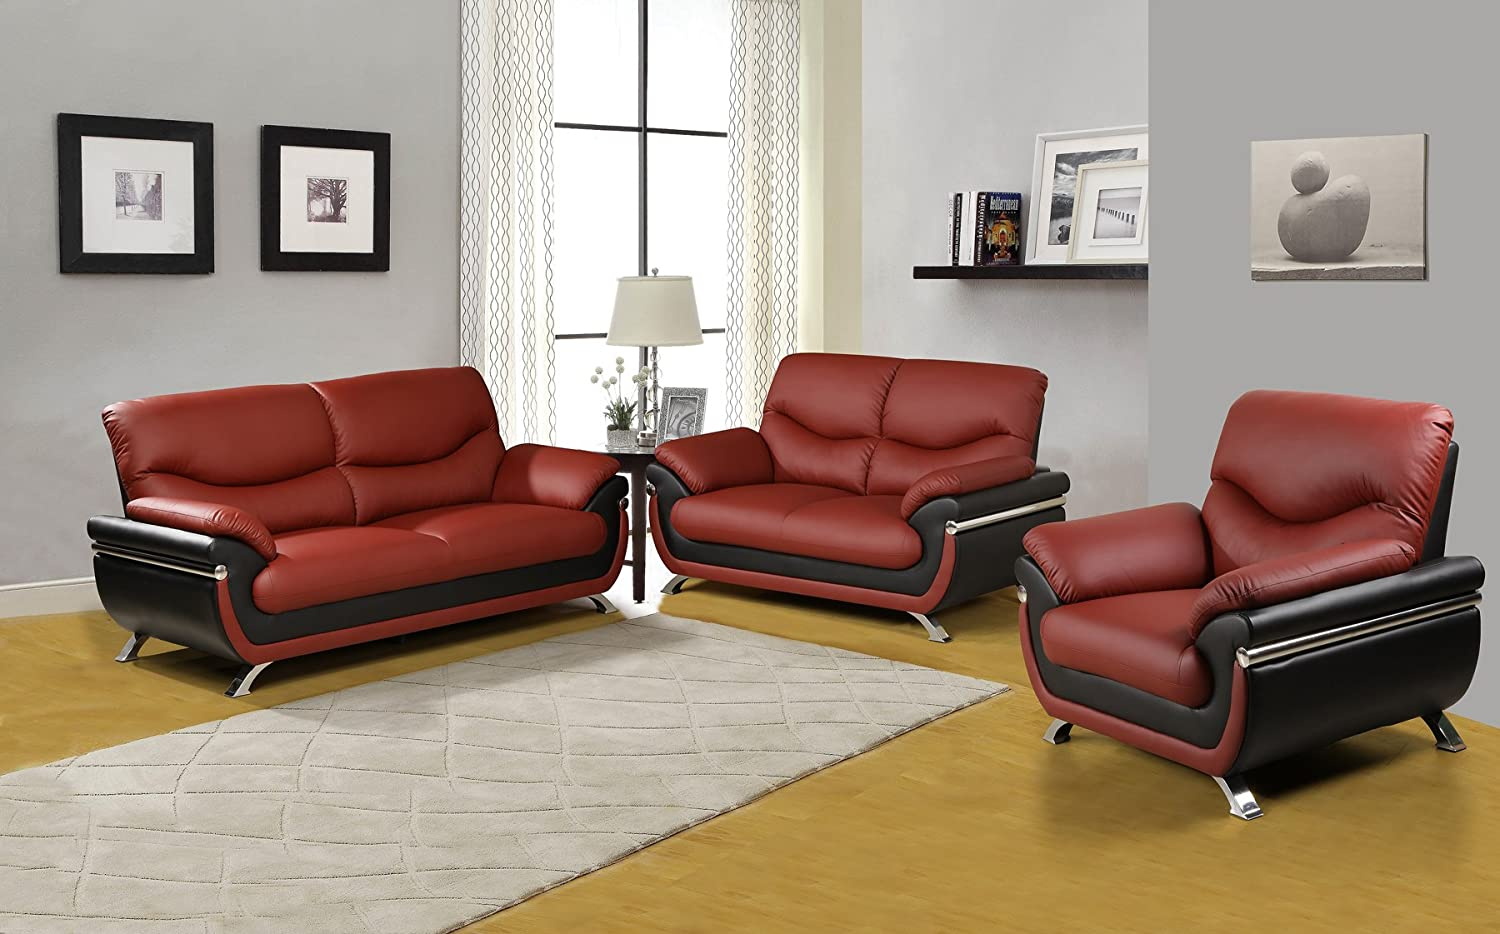 Amazon com  Beverly Furniture 3Piece Red Black Contempraray Faux Leather Living  Room Sofa Set  Kitchen   Dining. Amazon com  Beverly Furniture 3Piece Red Black Contempraray Faux